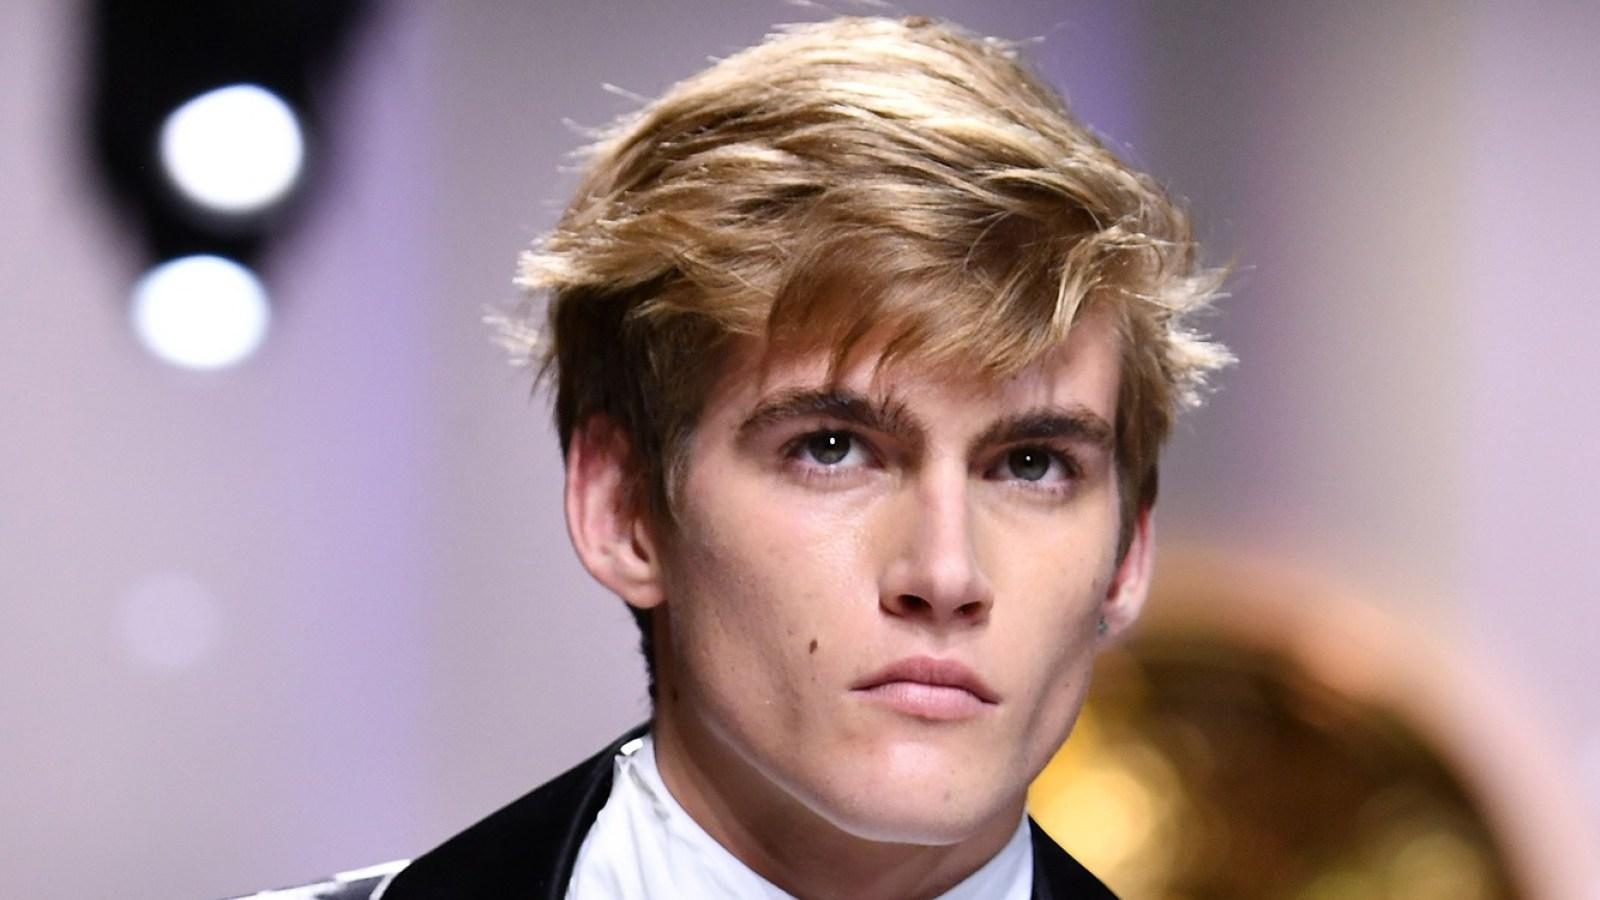 Cindy Crawford's Son Presley Gerber Charged With DUI